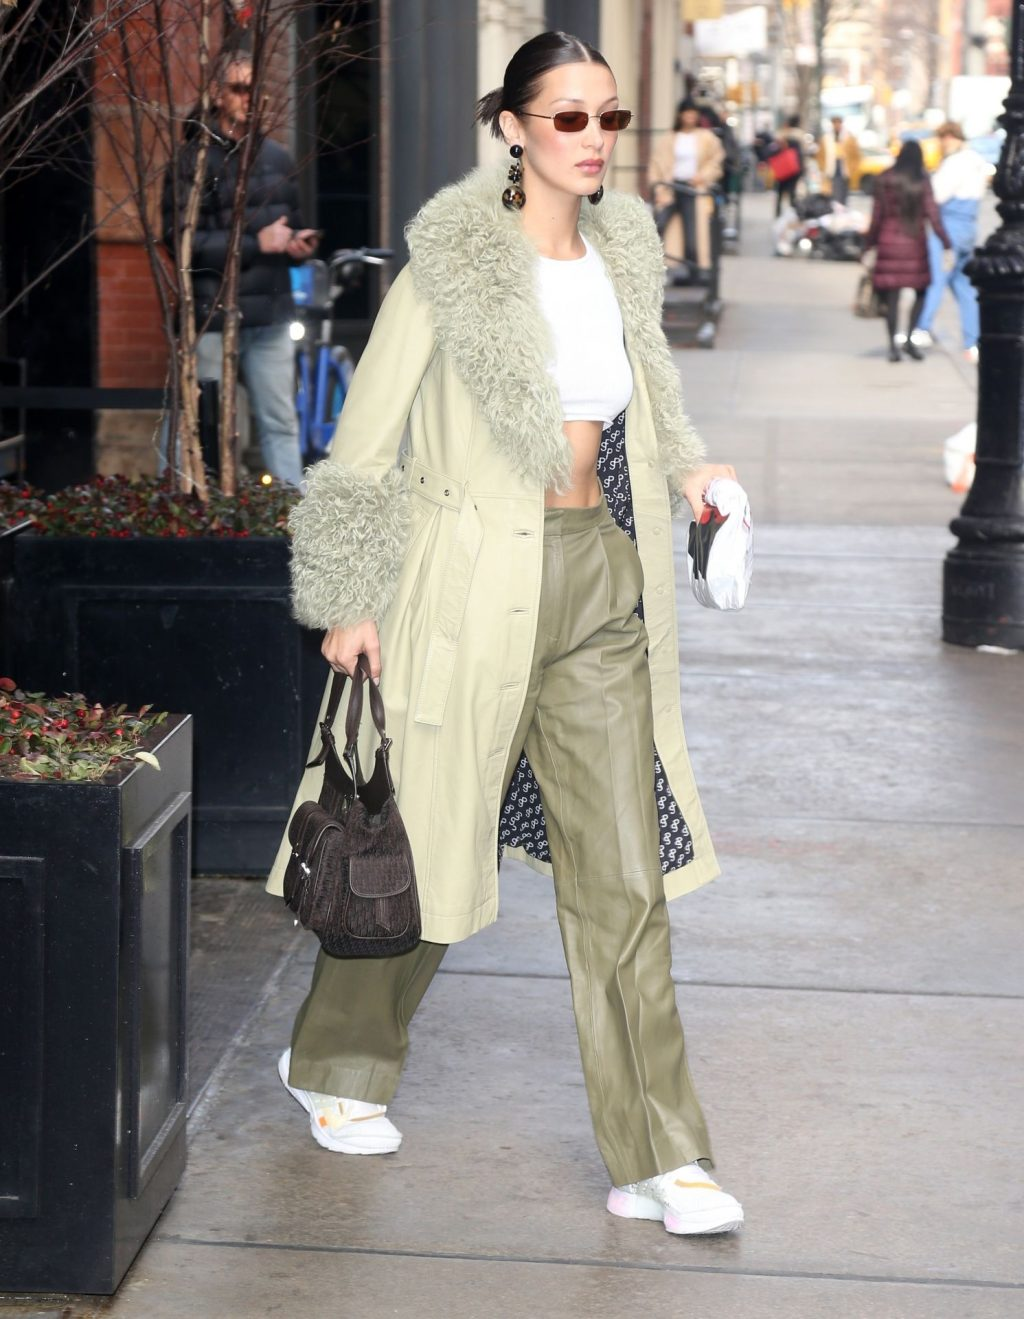 Bella Hadid See through The Fappening Blog 43 1024x1319 - Braless Bella Hadid Arrives at the Park Avenue Armory for the Marc Jacobs Fashion Show (59 Photos)